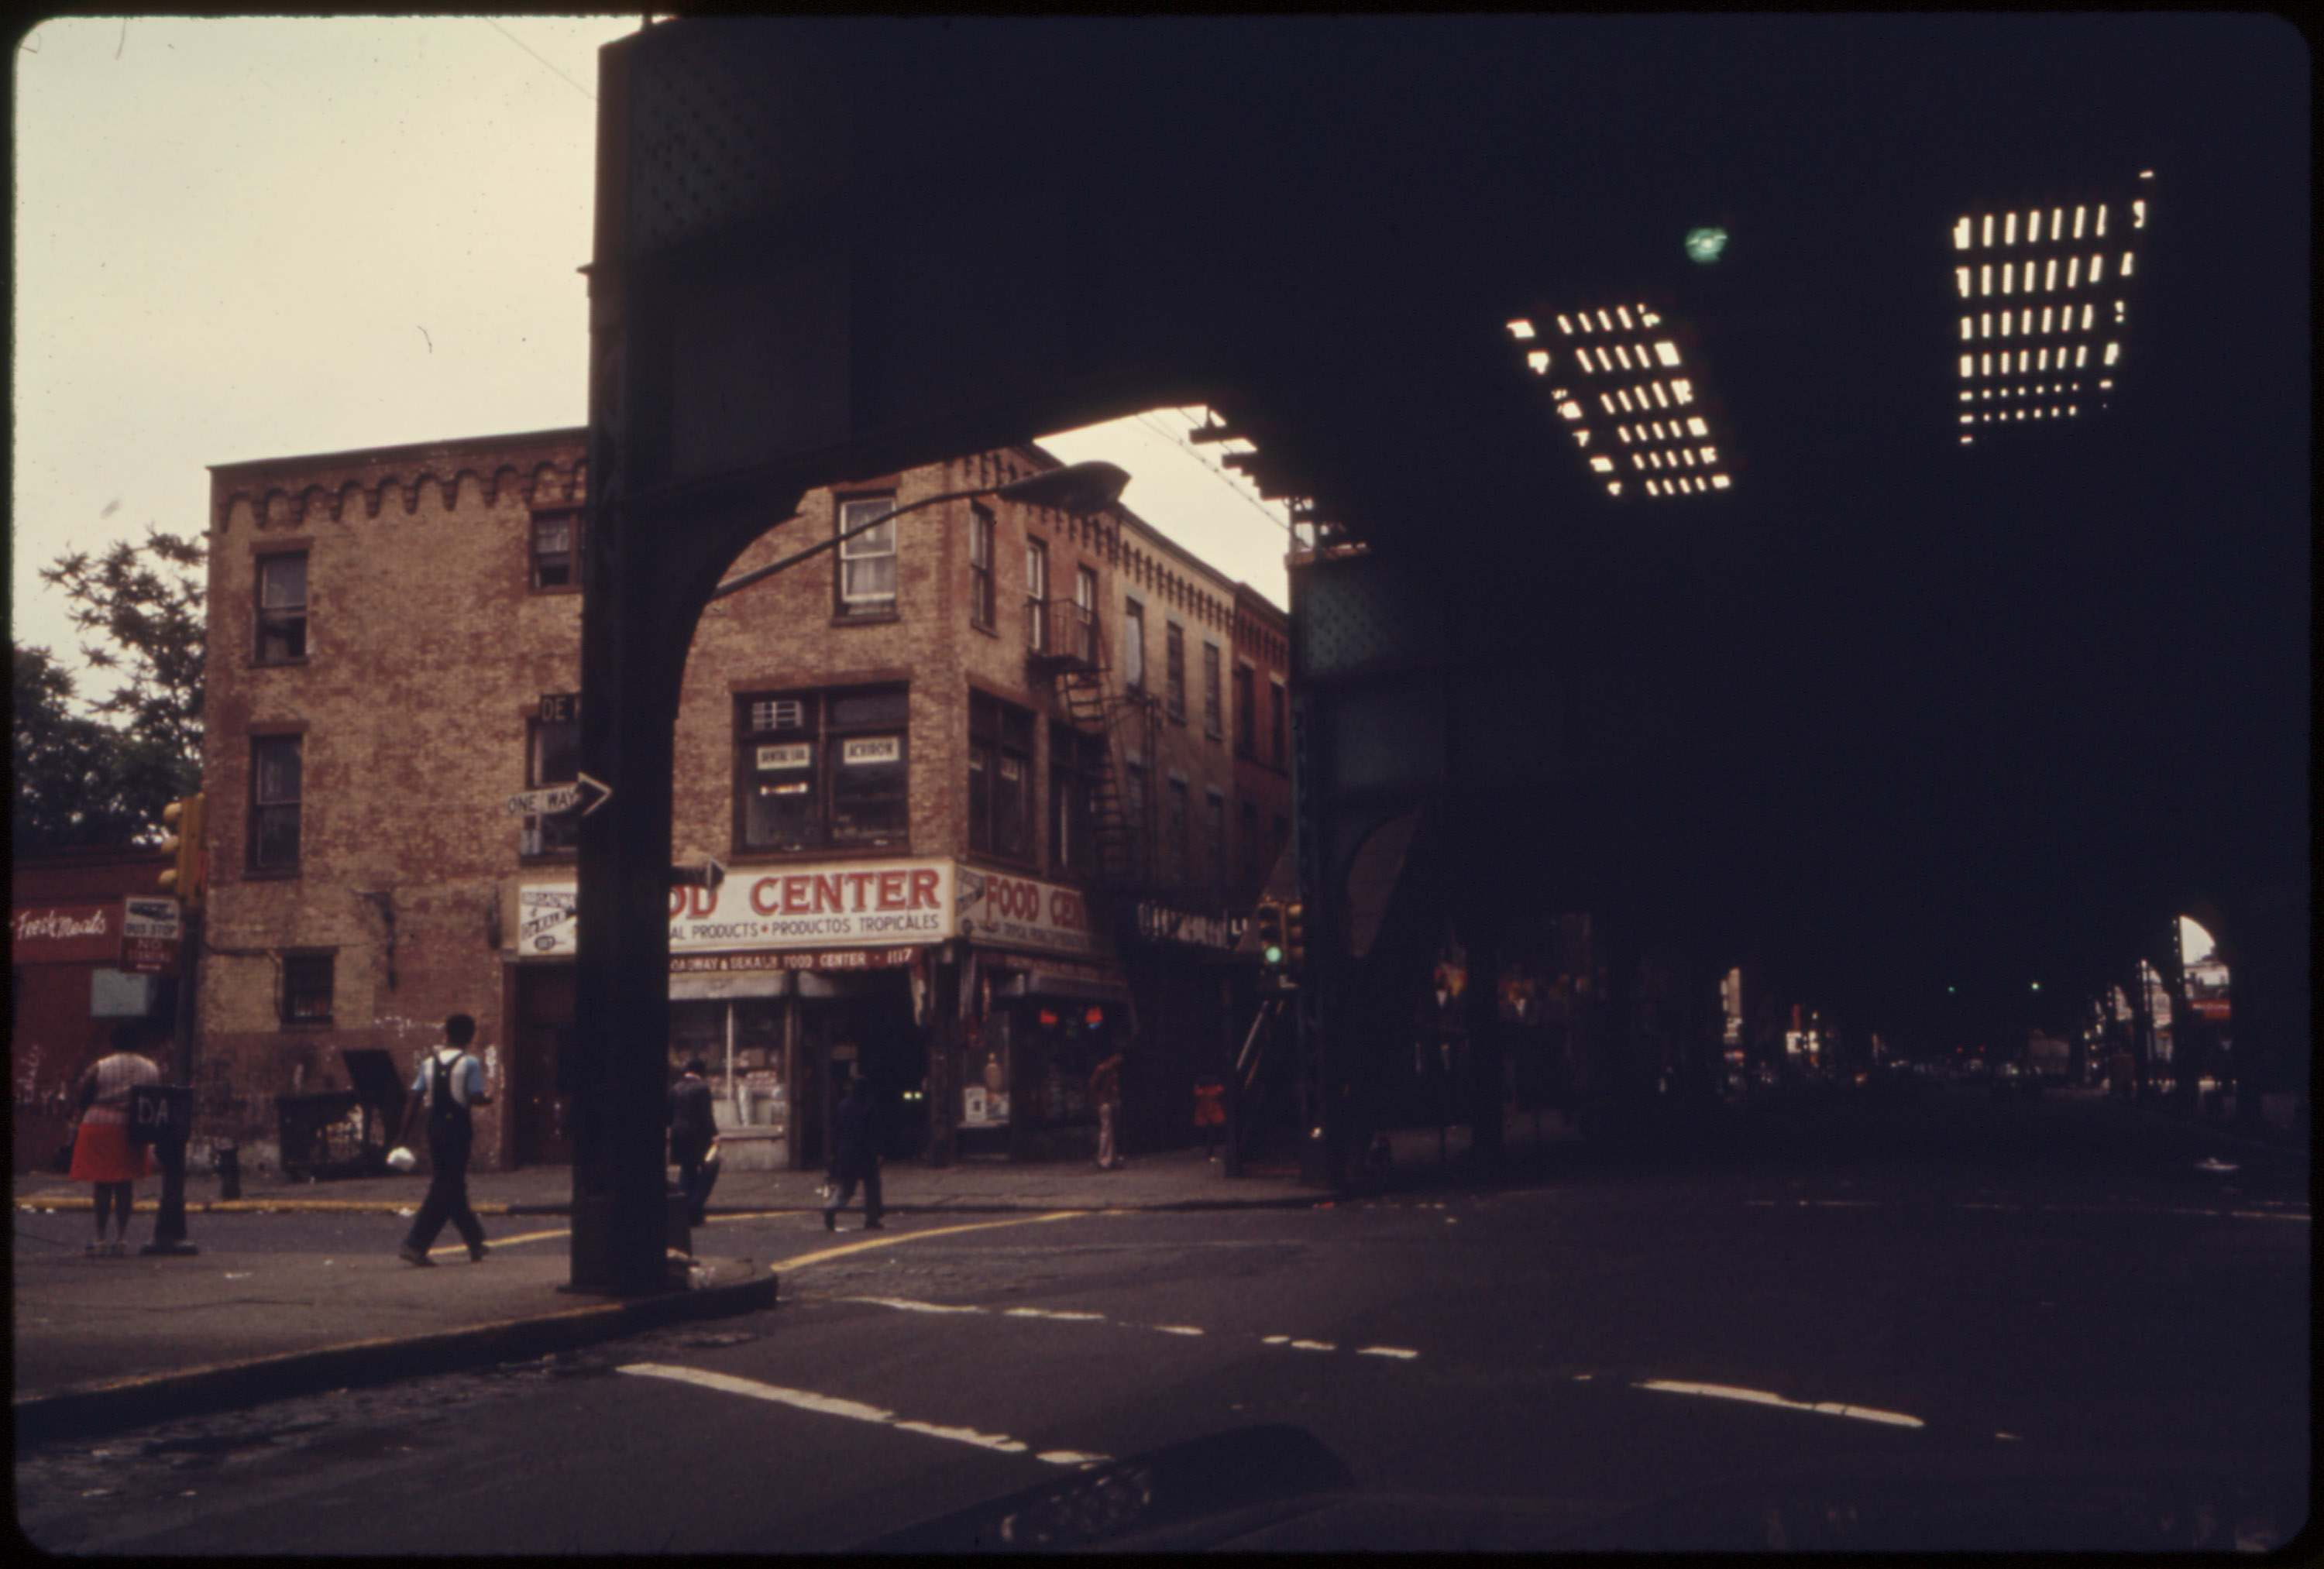 Elevated train tracks at Bushwick Avenue in Brooklyn, NYC, June 1974.